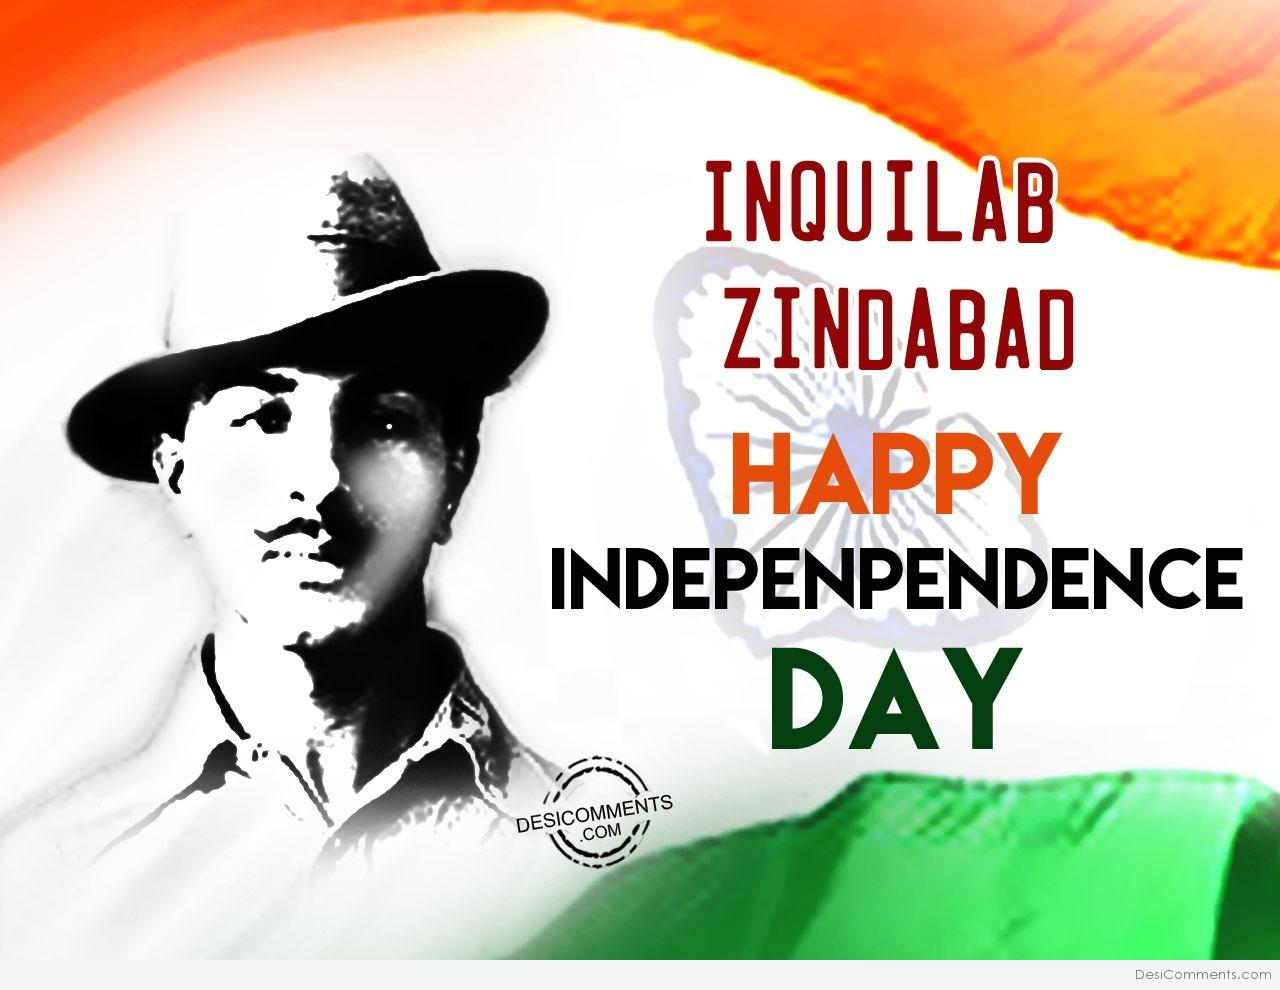 Inquilab Zindabad,Happy Independence Day - DesiComments.com